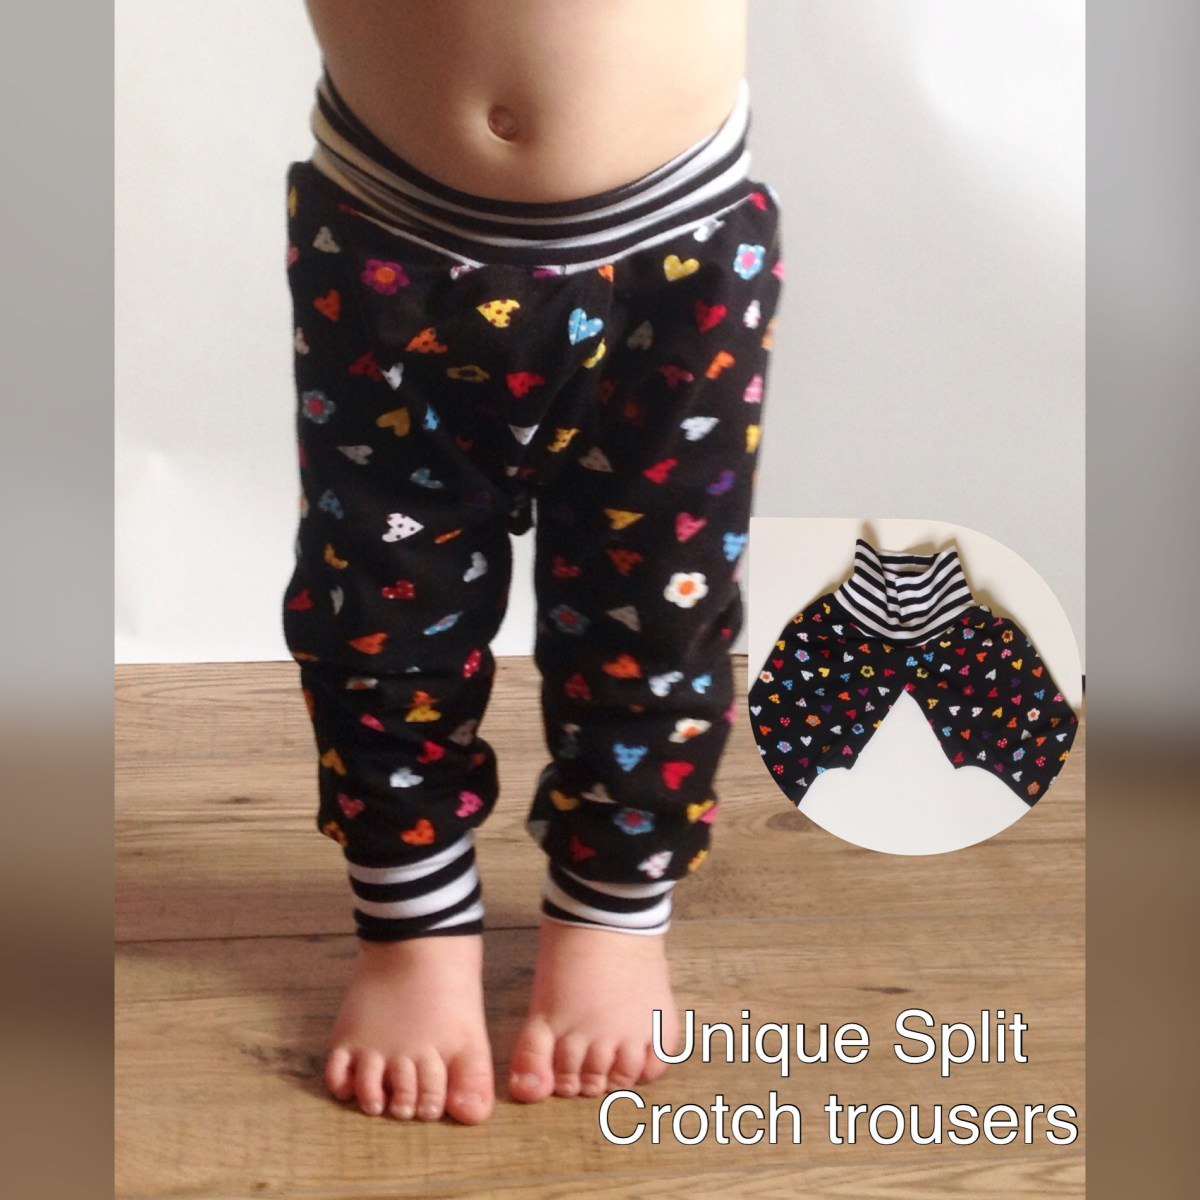 Split crotch baby trousers pants EC Clothing